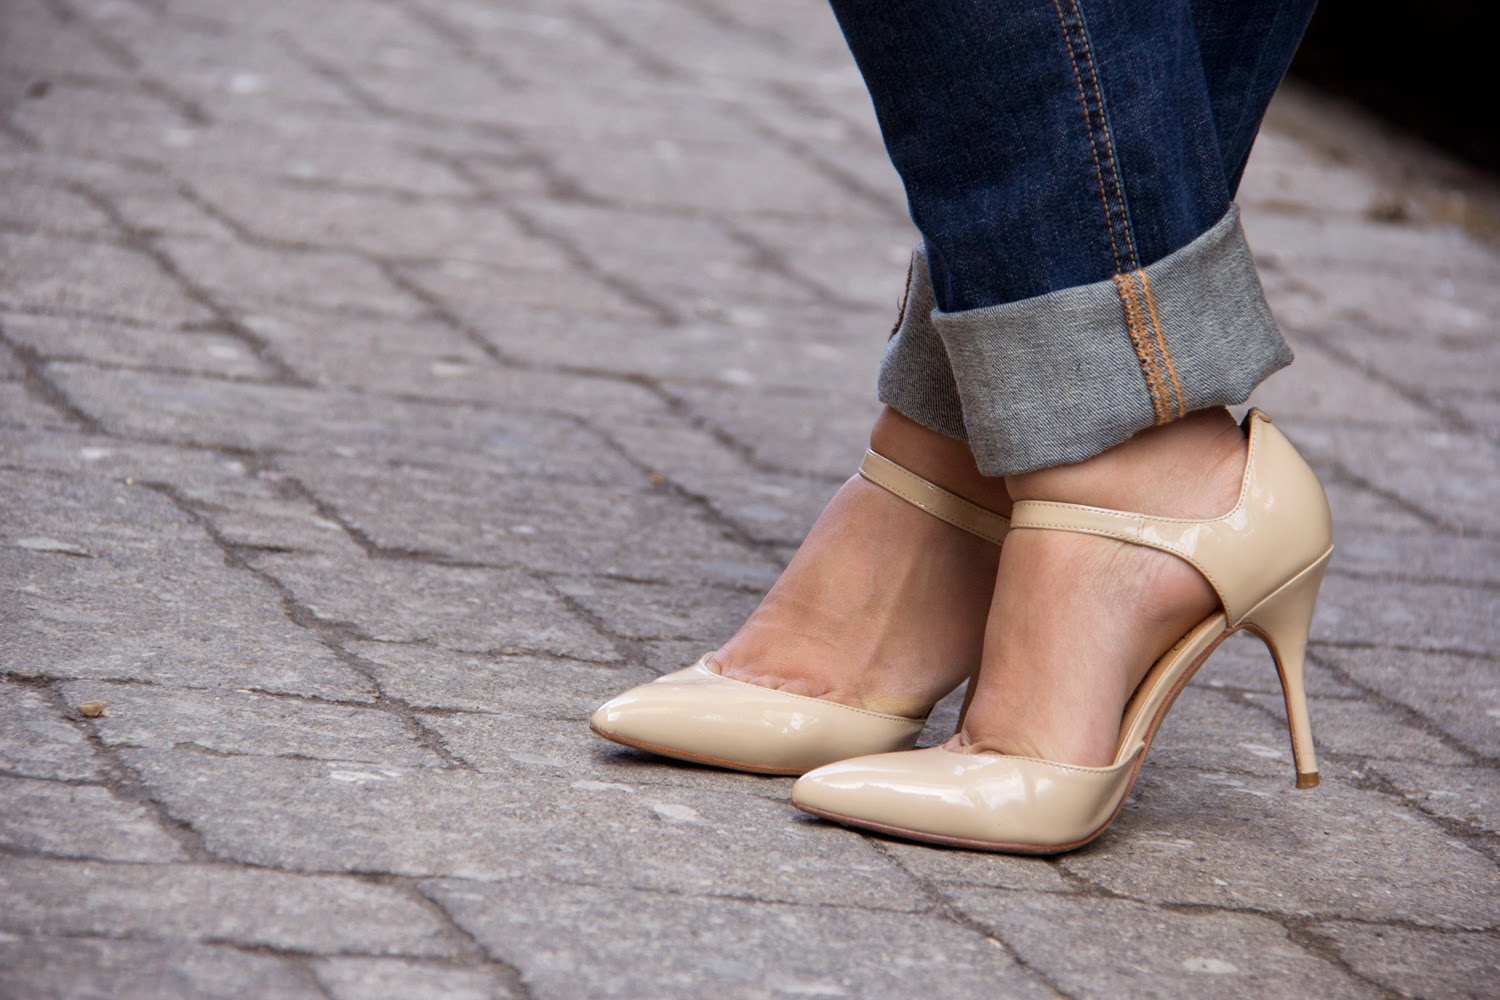 Spring-Outfit-Look, Nude-Pointy-Shoes-Heels, Street-Style, Boyfriend-Jeans